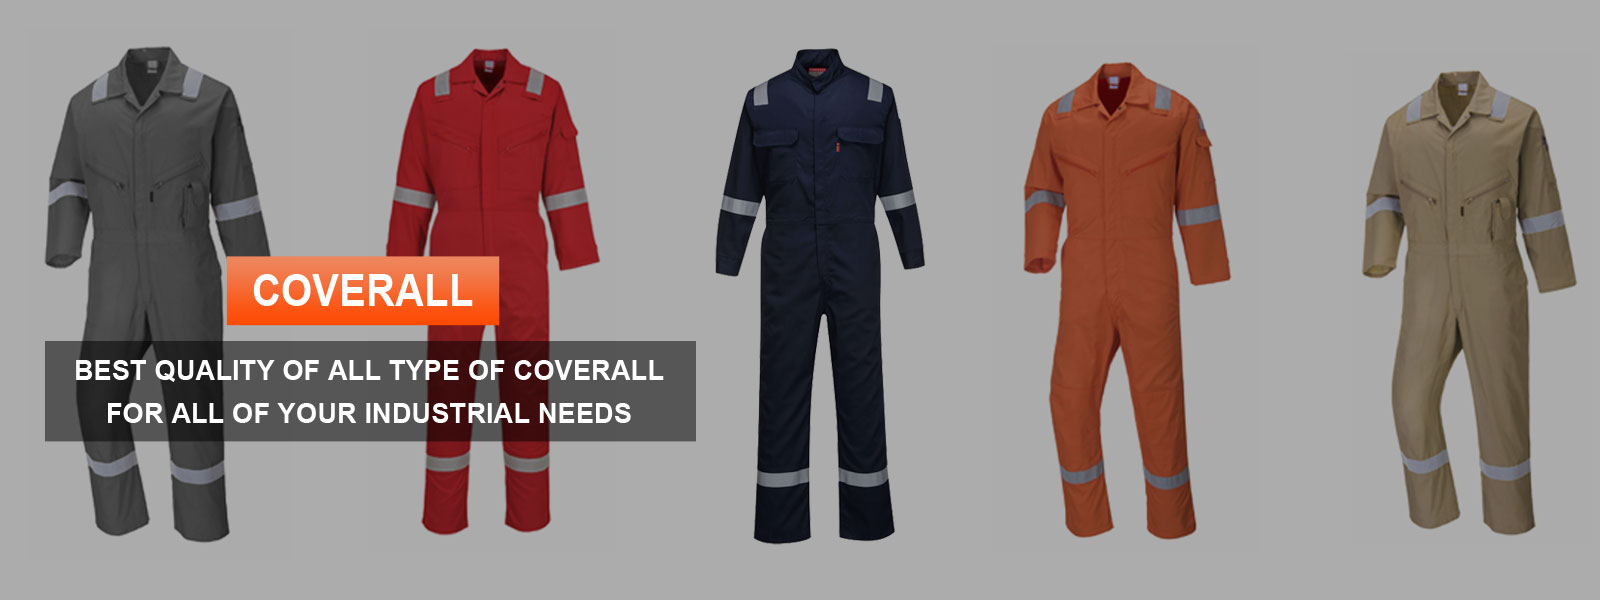 Coverall Manufacturers in Angola